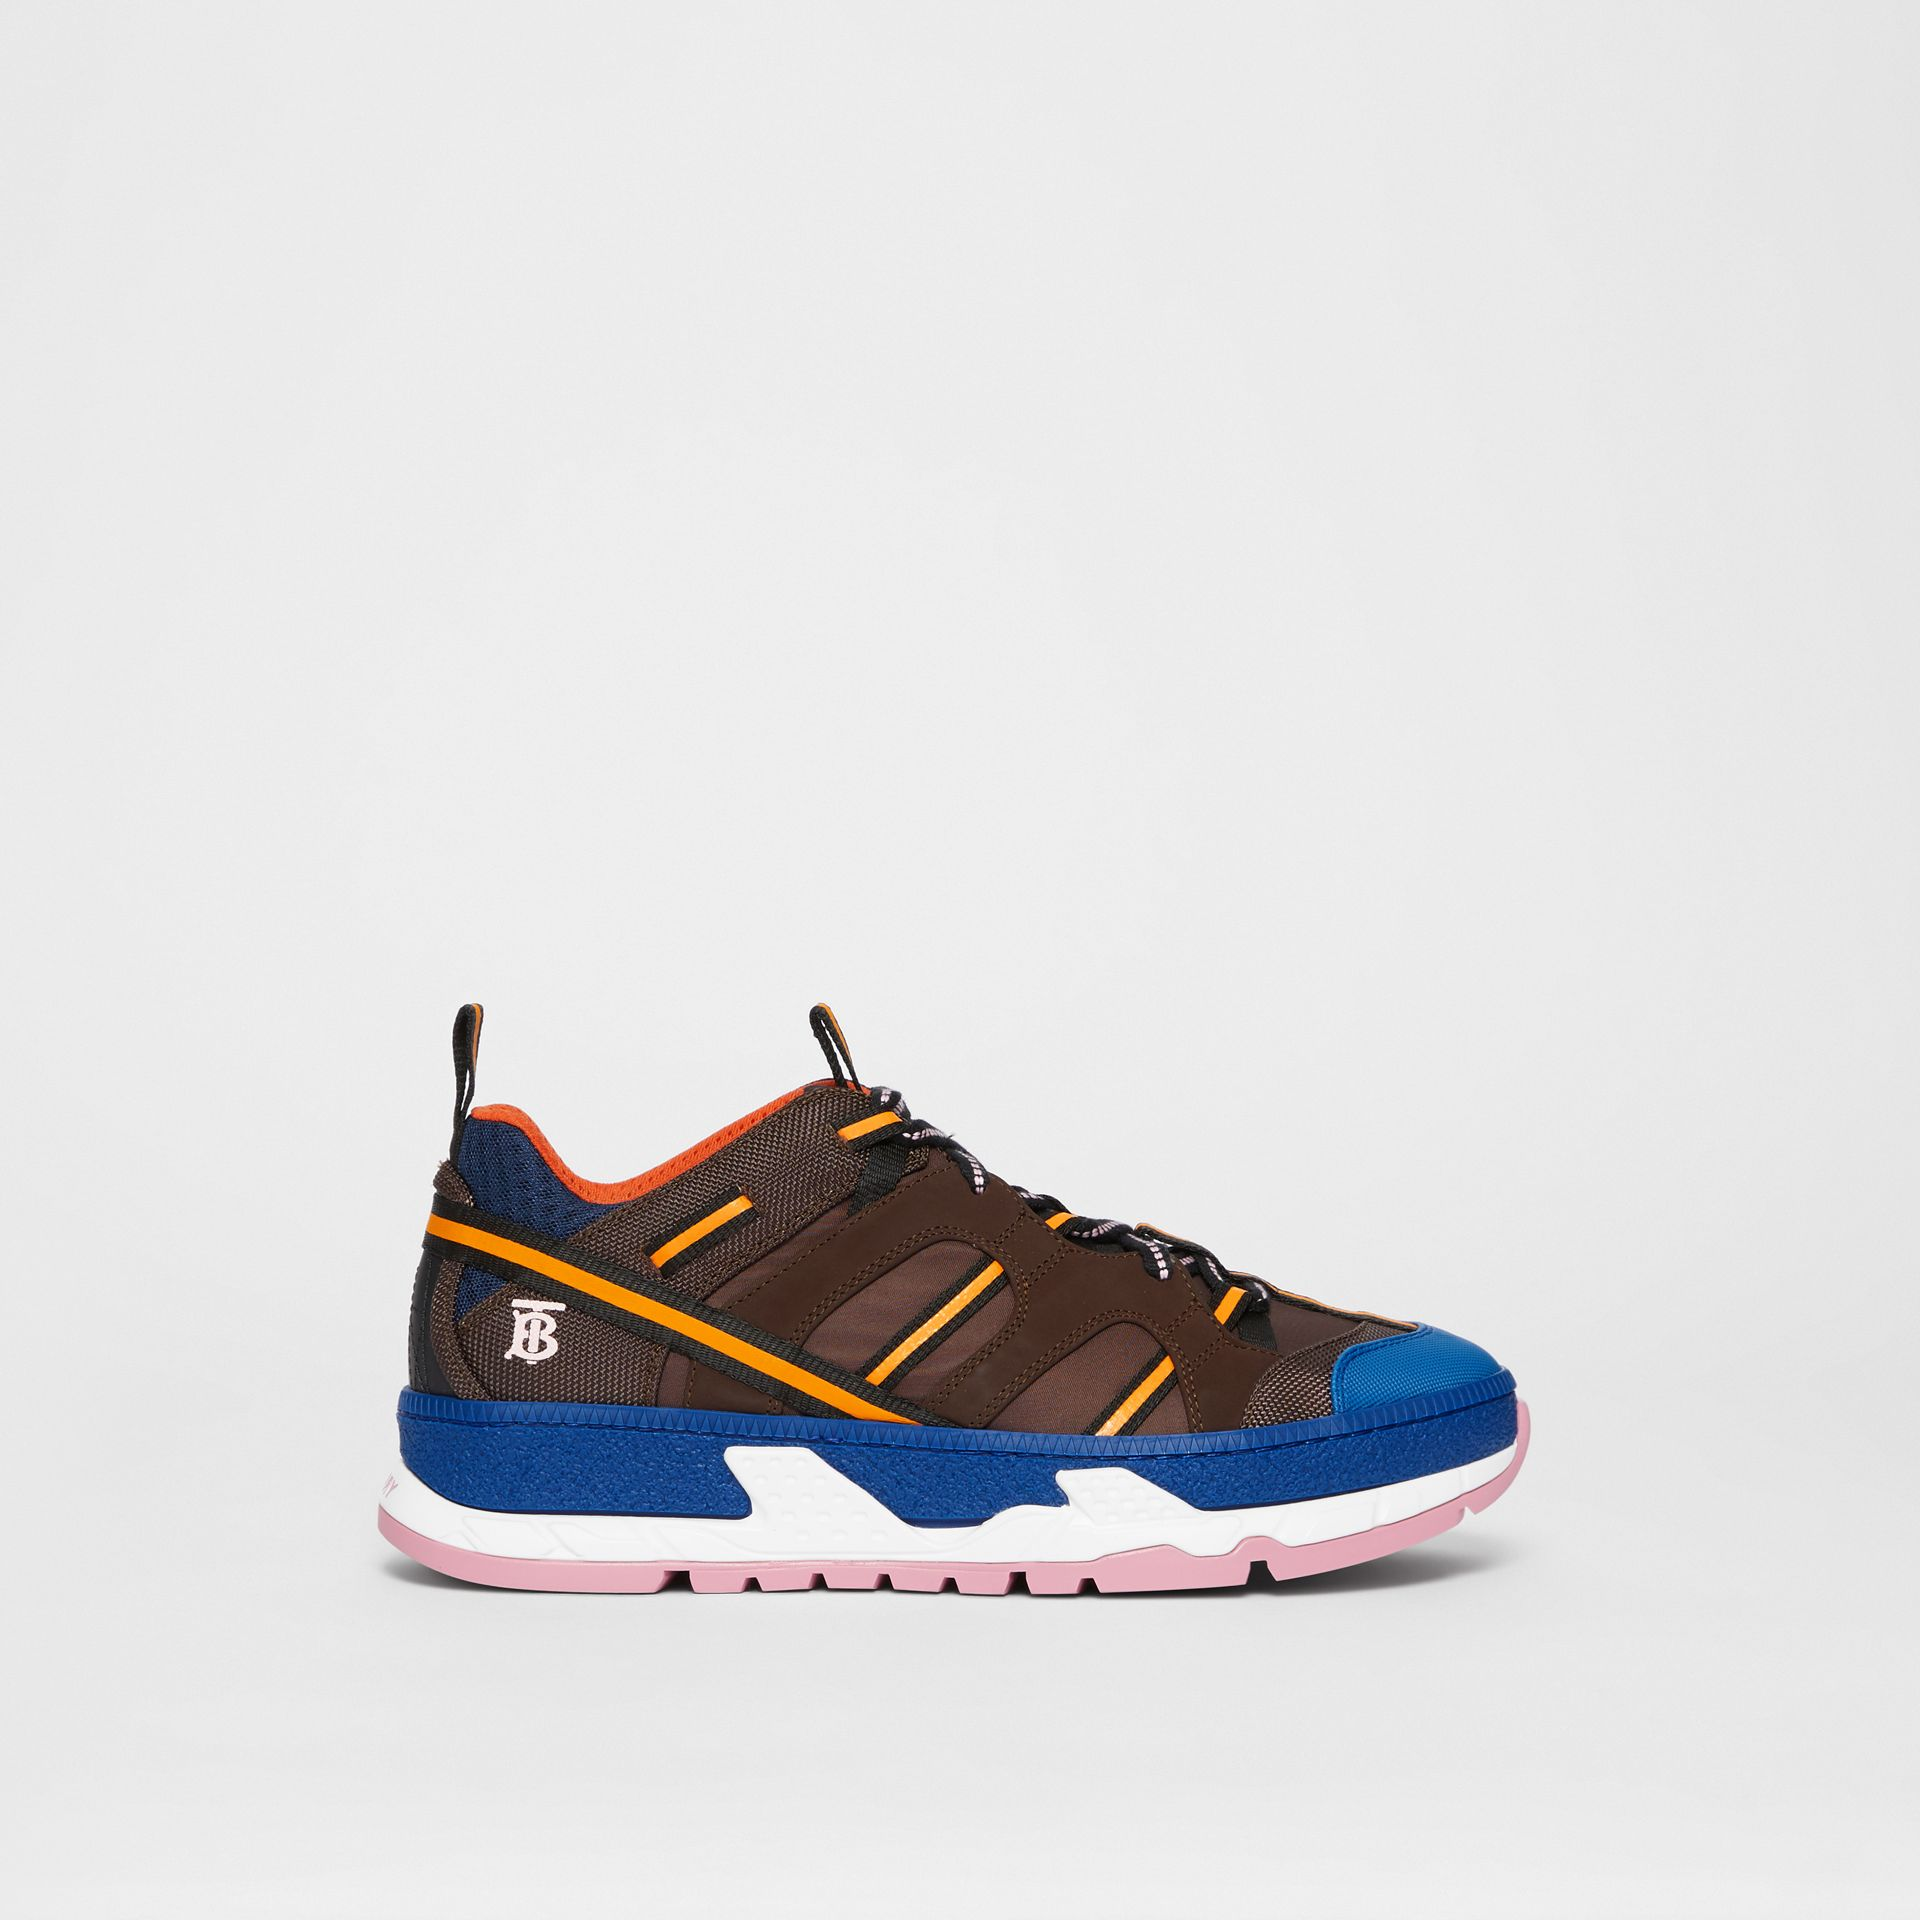 Nylon and Mesh Union Sneakers in Coffee/blue - Men | Burberry Singapore - gallery image 5